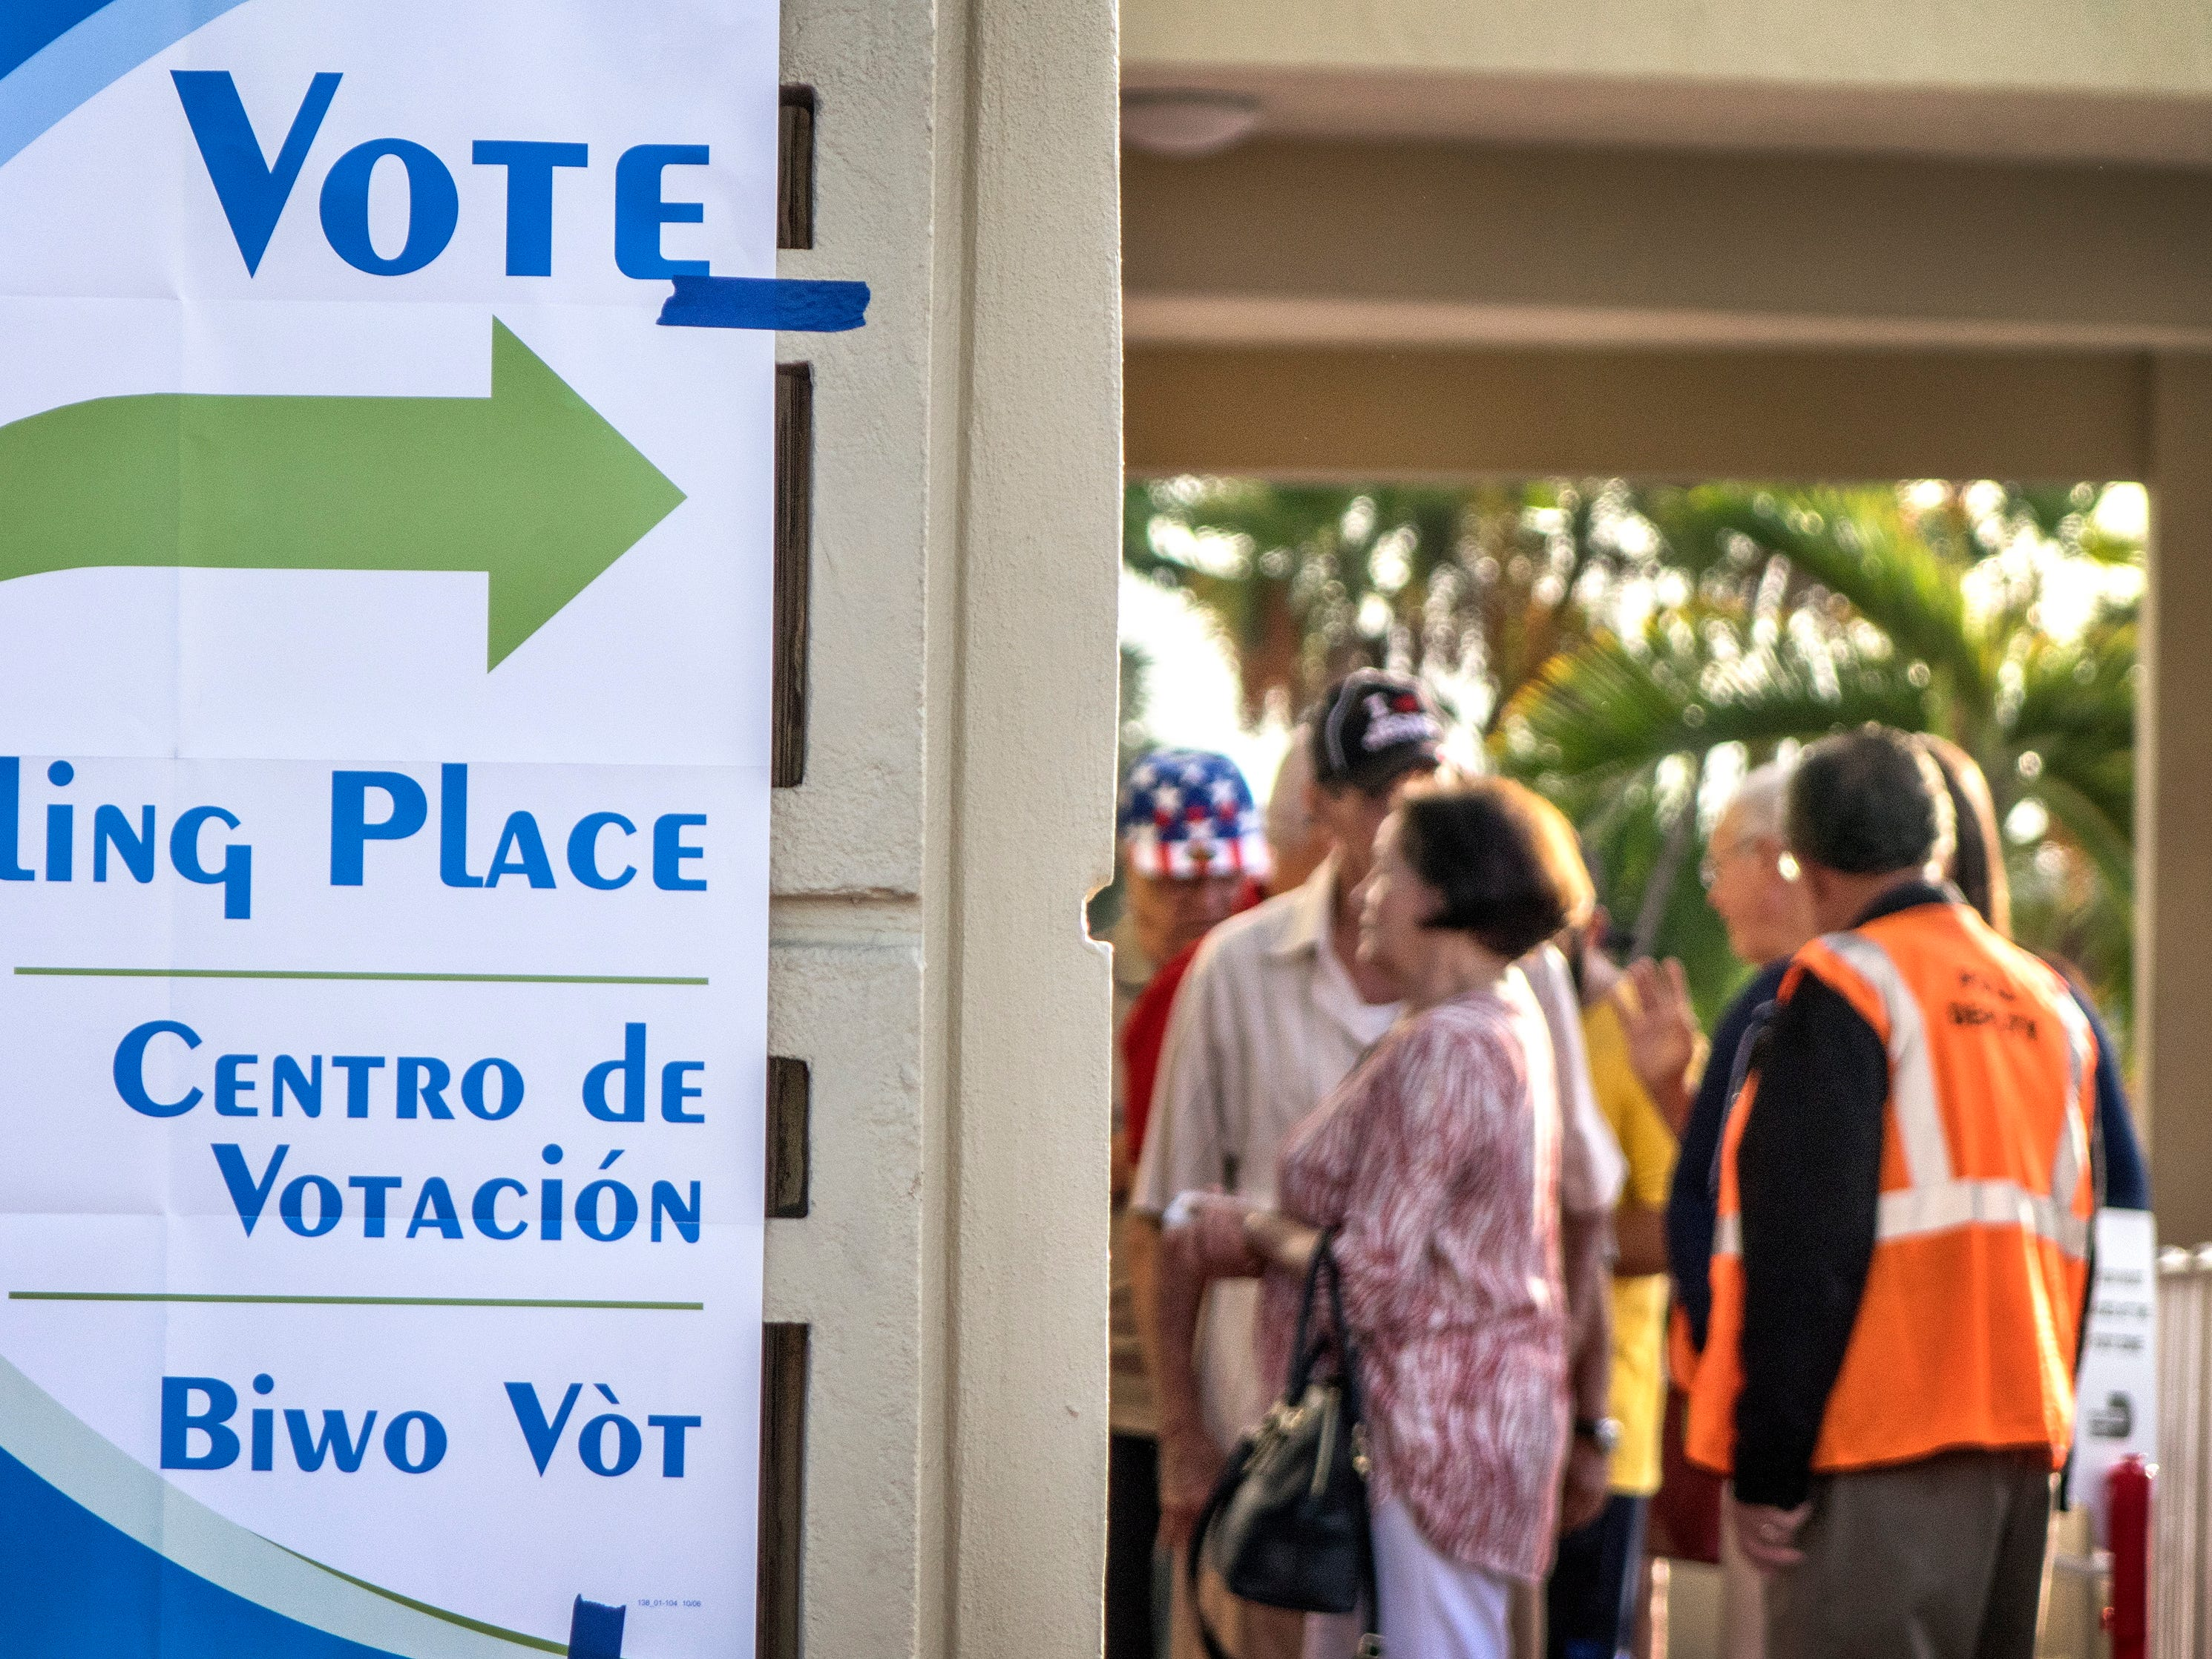 Voters wait in line to cast their ballots in the midterms in Hialeah, Florida on Nov. 6.